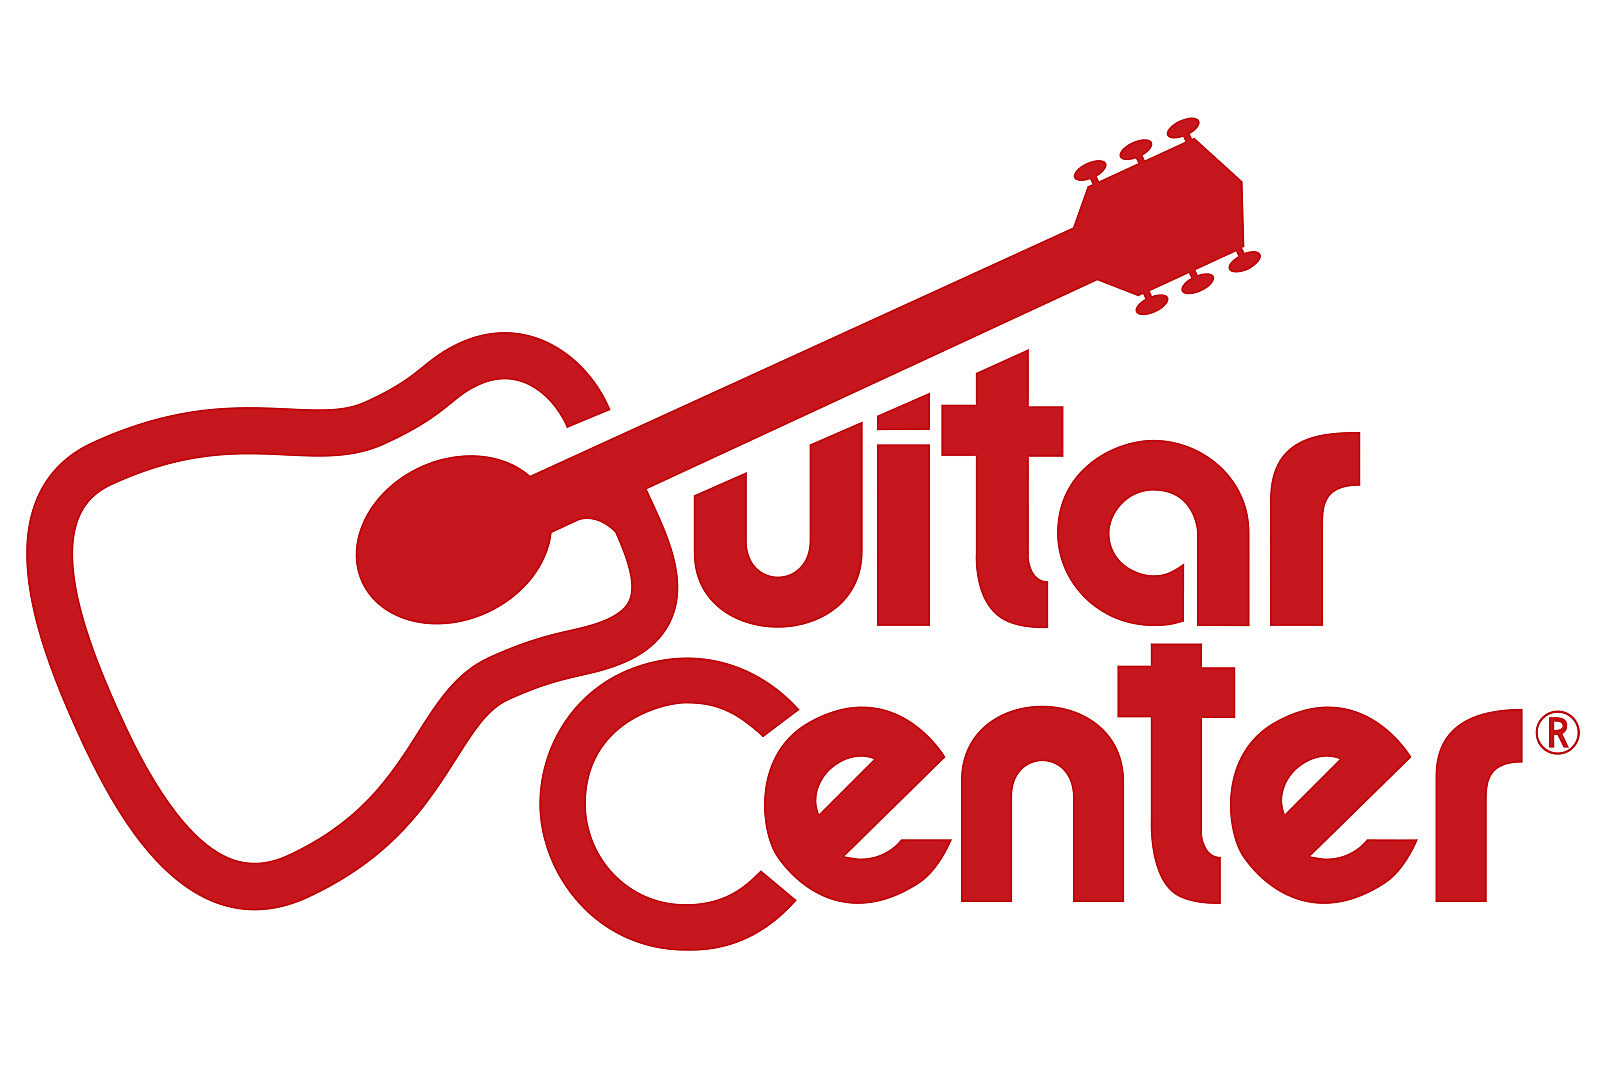 Guitar Center Reportedly Facing 'Imminent Bankrupcty'